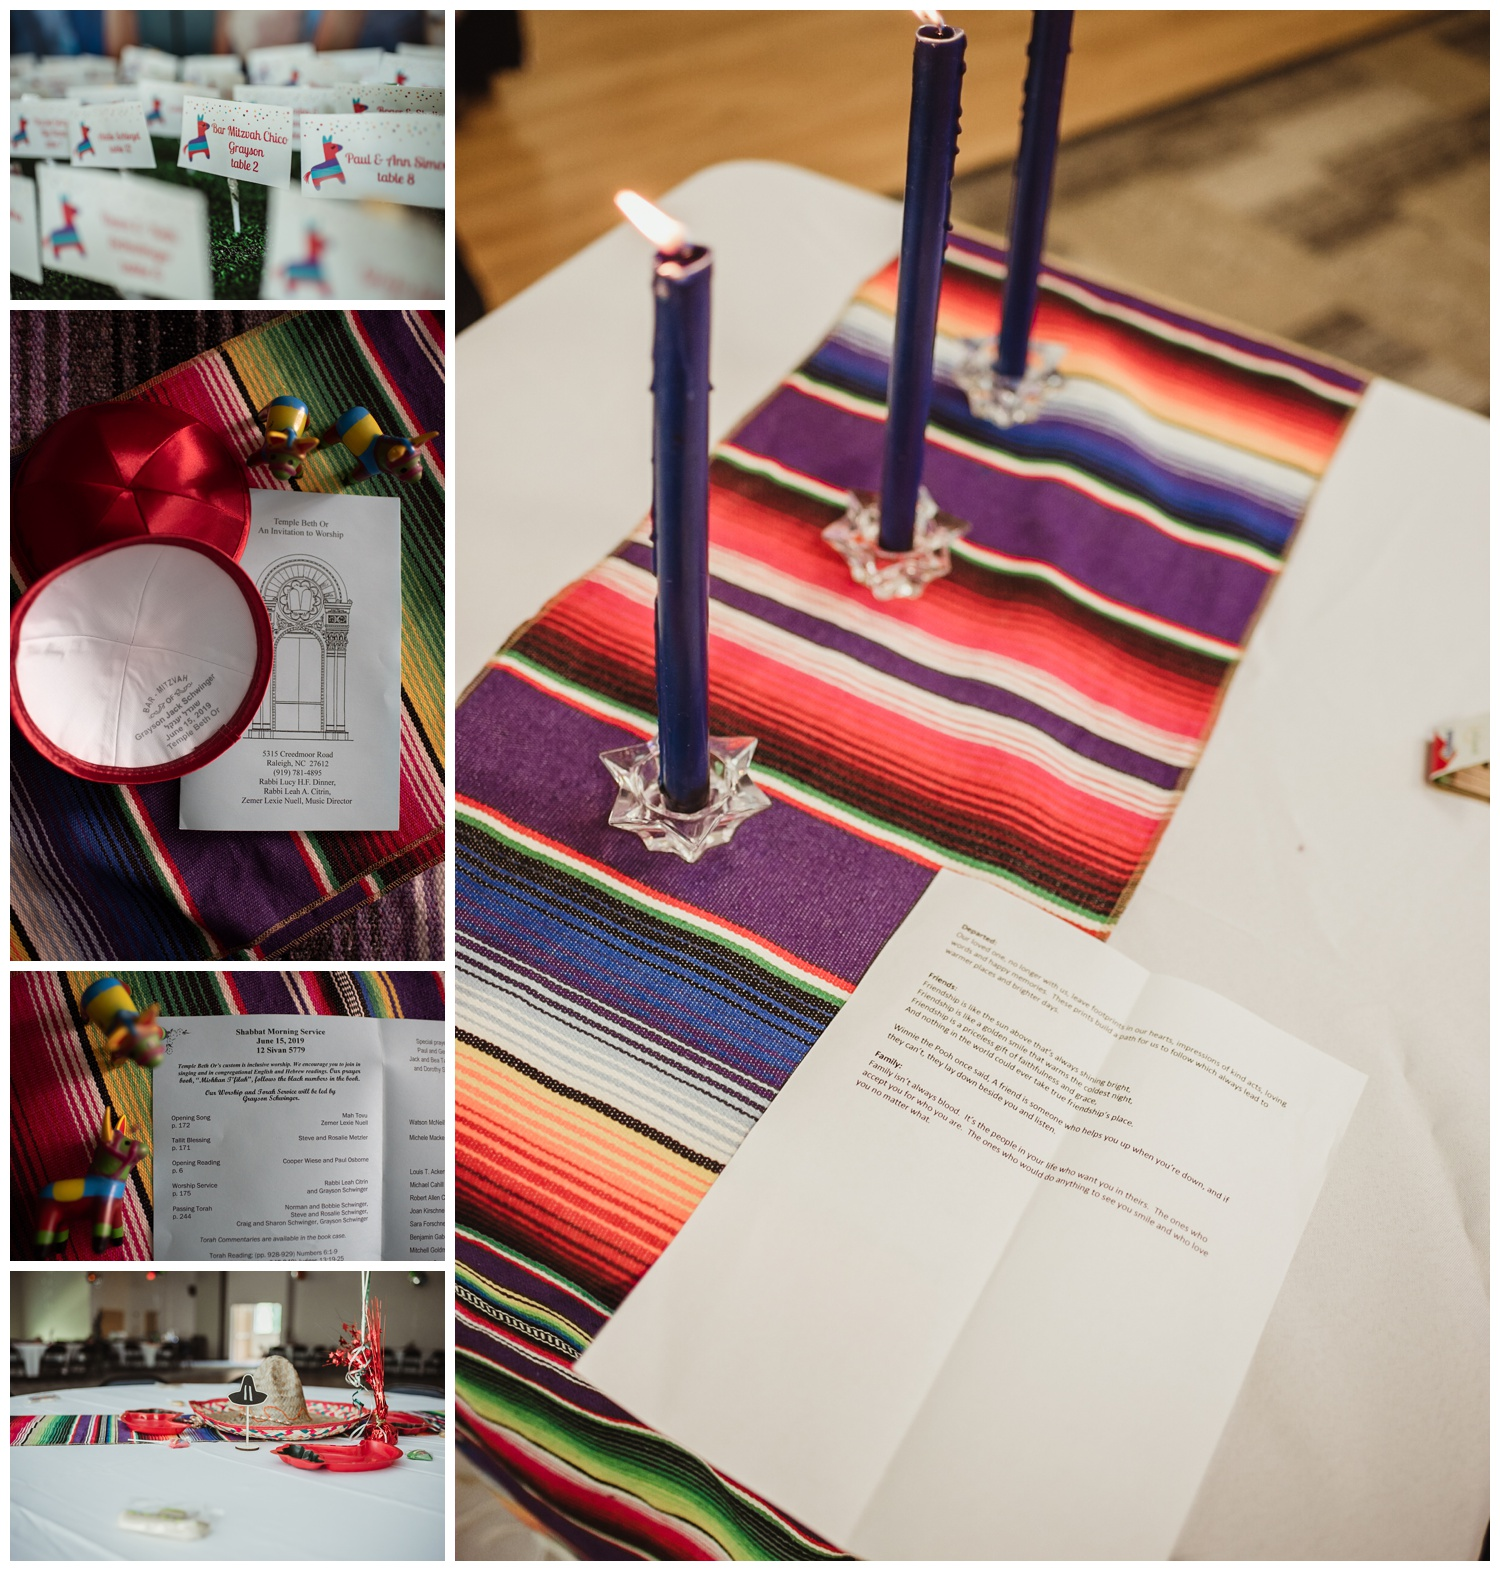 Details of the Mexican themed mitzvah celebration, including centerpieces and invites, at Temple Beth Or in Raleigh, pictures by Rose Trail Images.